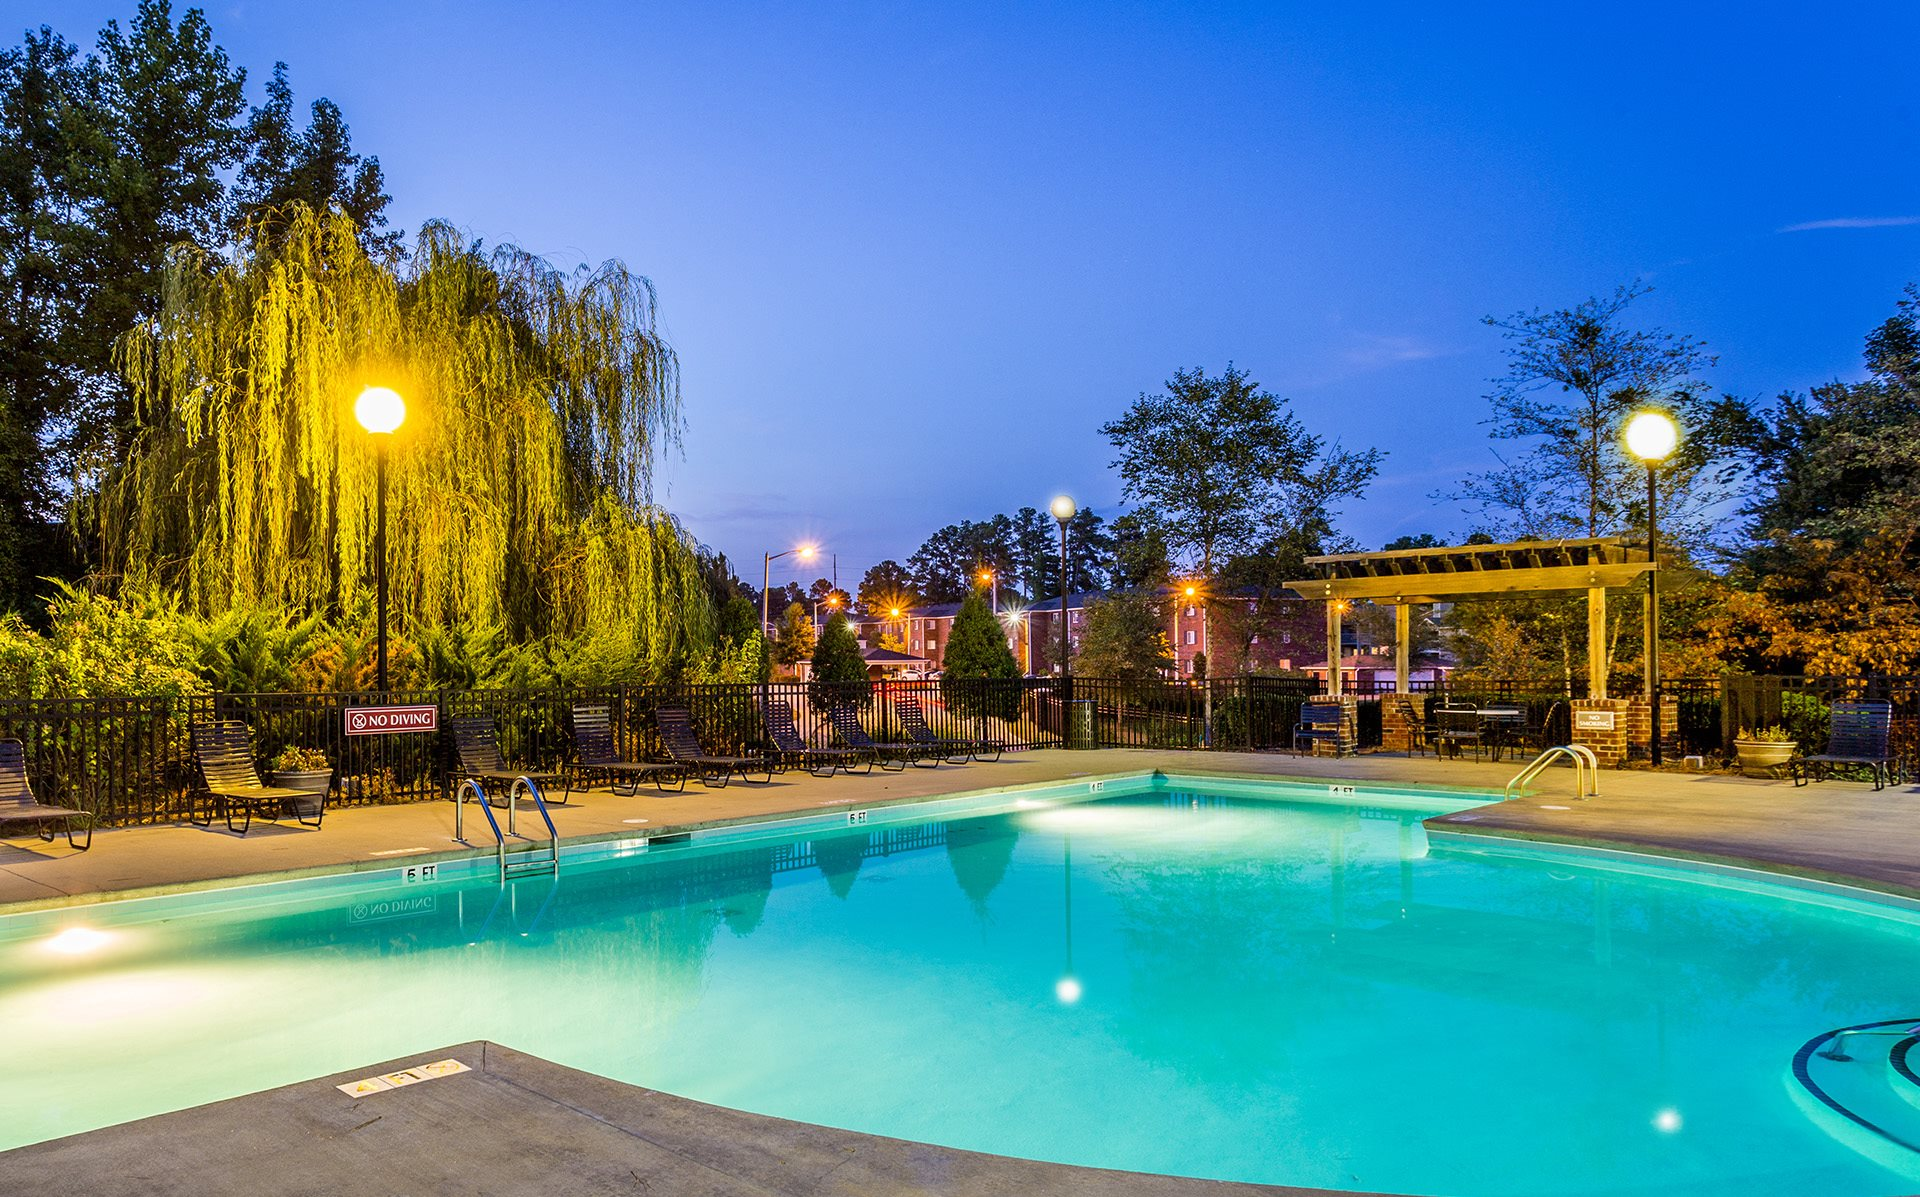 Apartments in Fayetteville, NC | Eagle Point Village Apartments